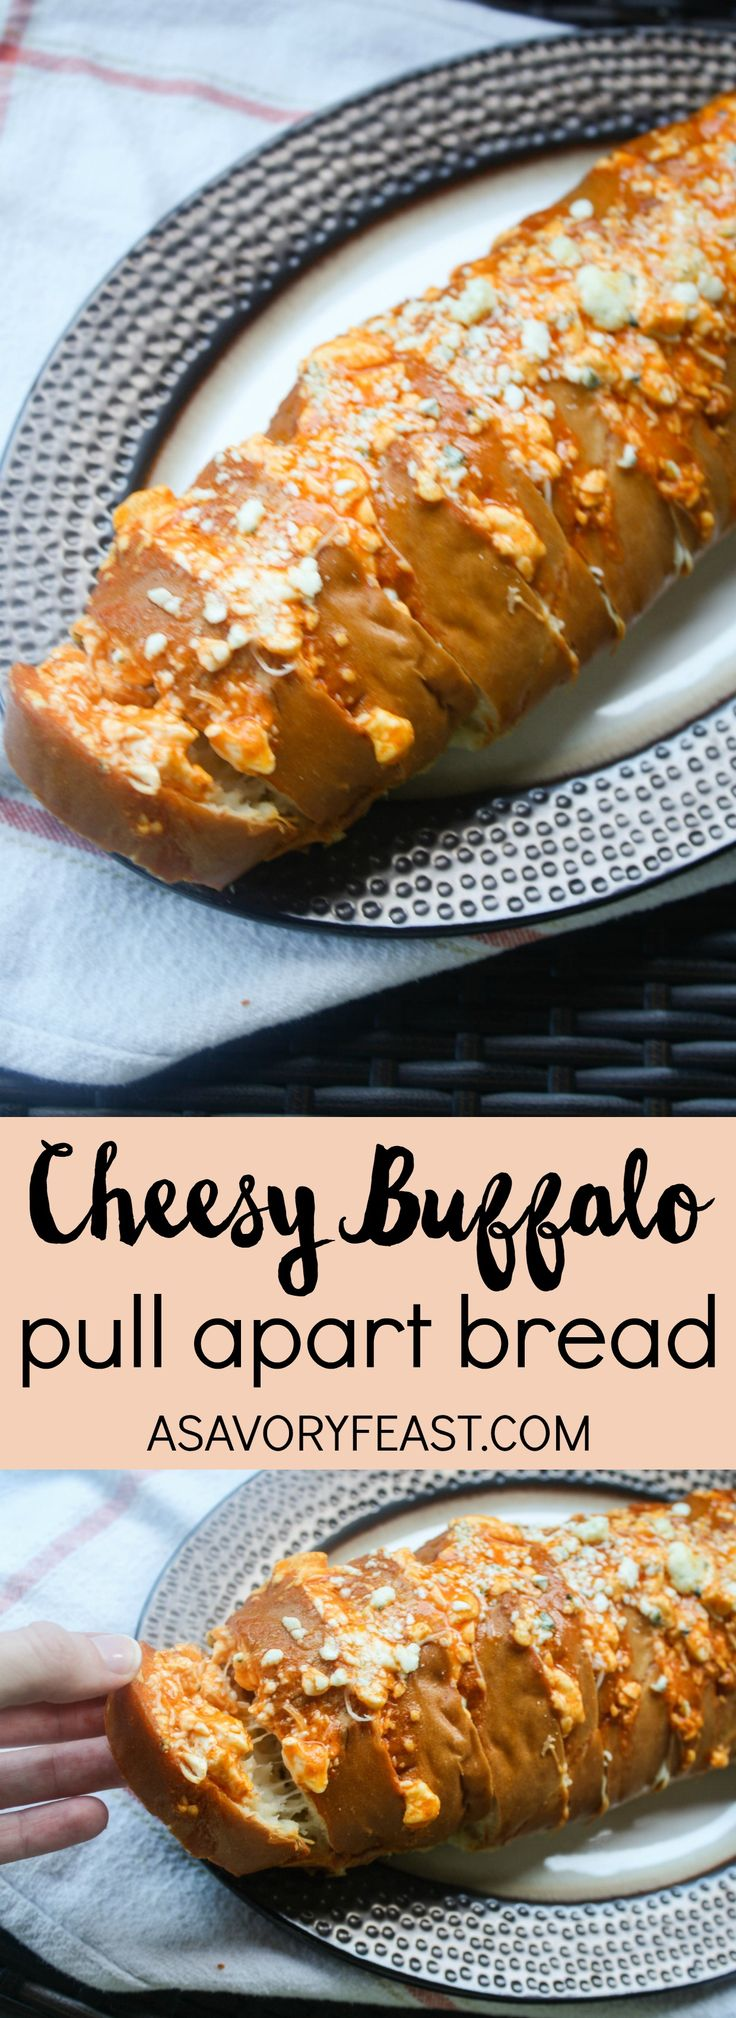 This is the perfect game day appetizer! Cheesy Buffalo Pull Apart Bread is so simple to assemble but sure to impress. Extra cheesy and packed with buffalo flavor, your guests will be begging for more!